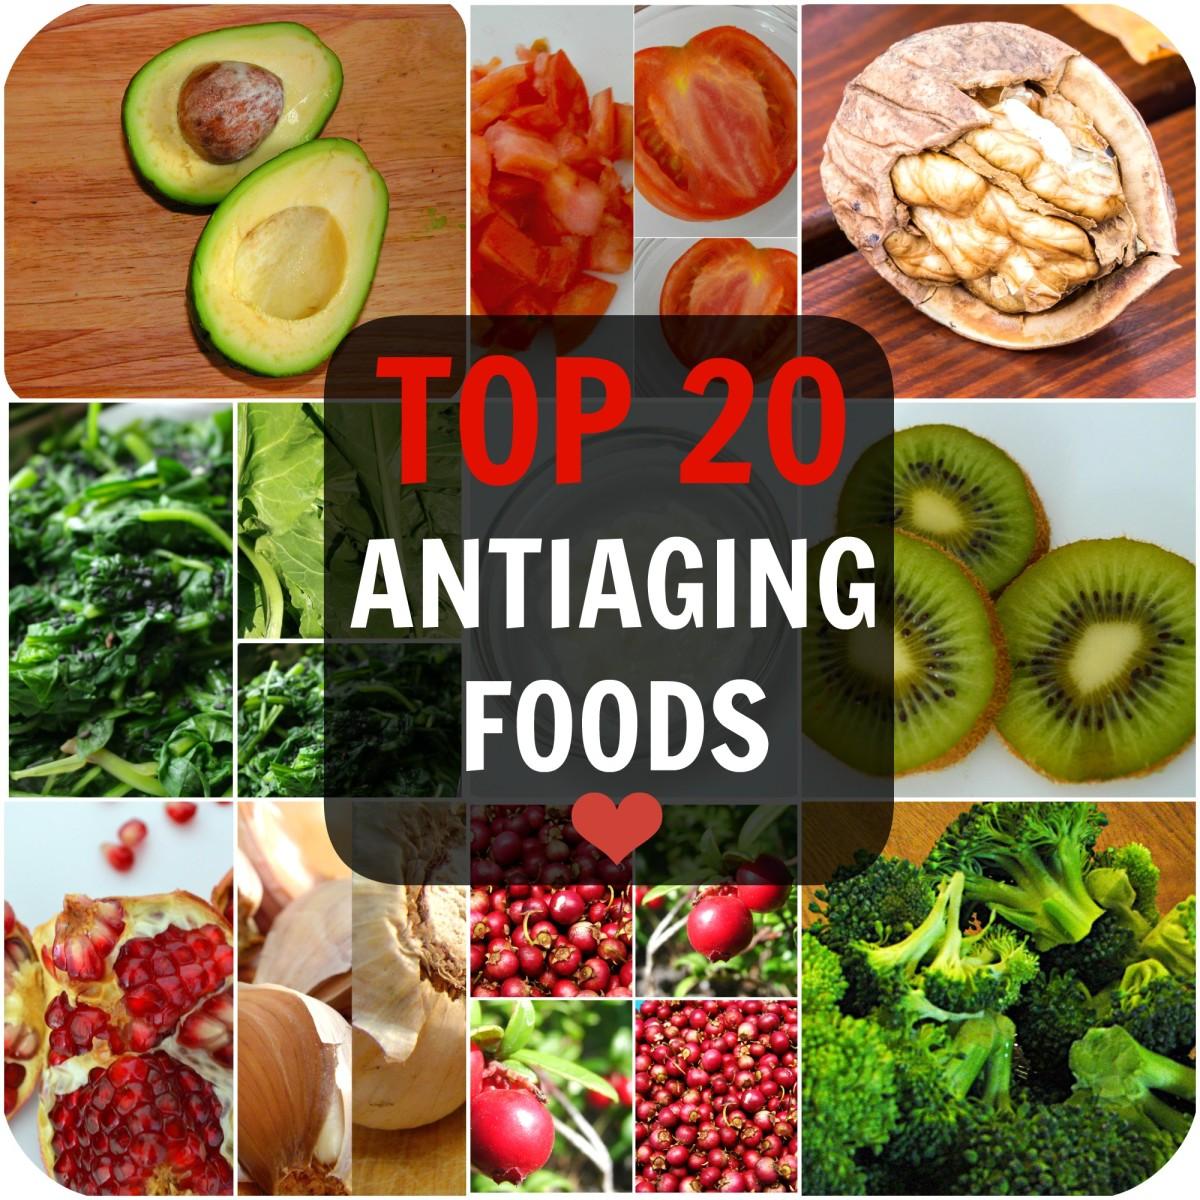 Antiaging Foods | 20 Superfoods to Fight Aging